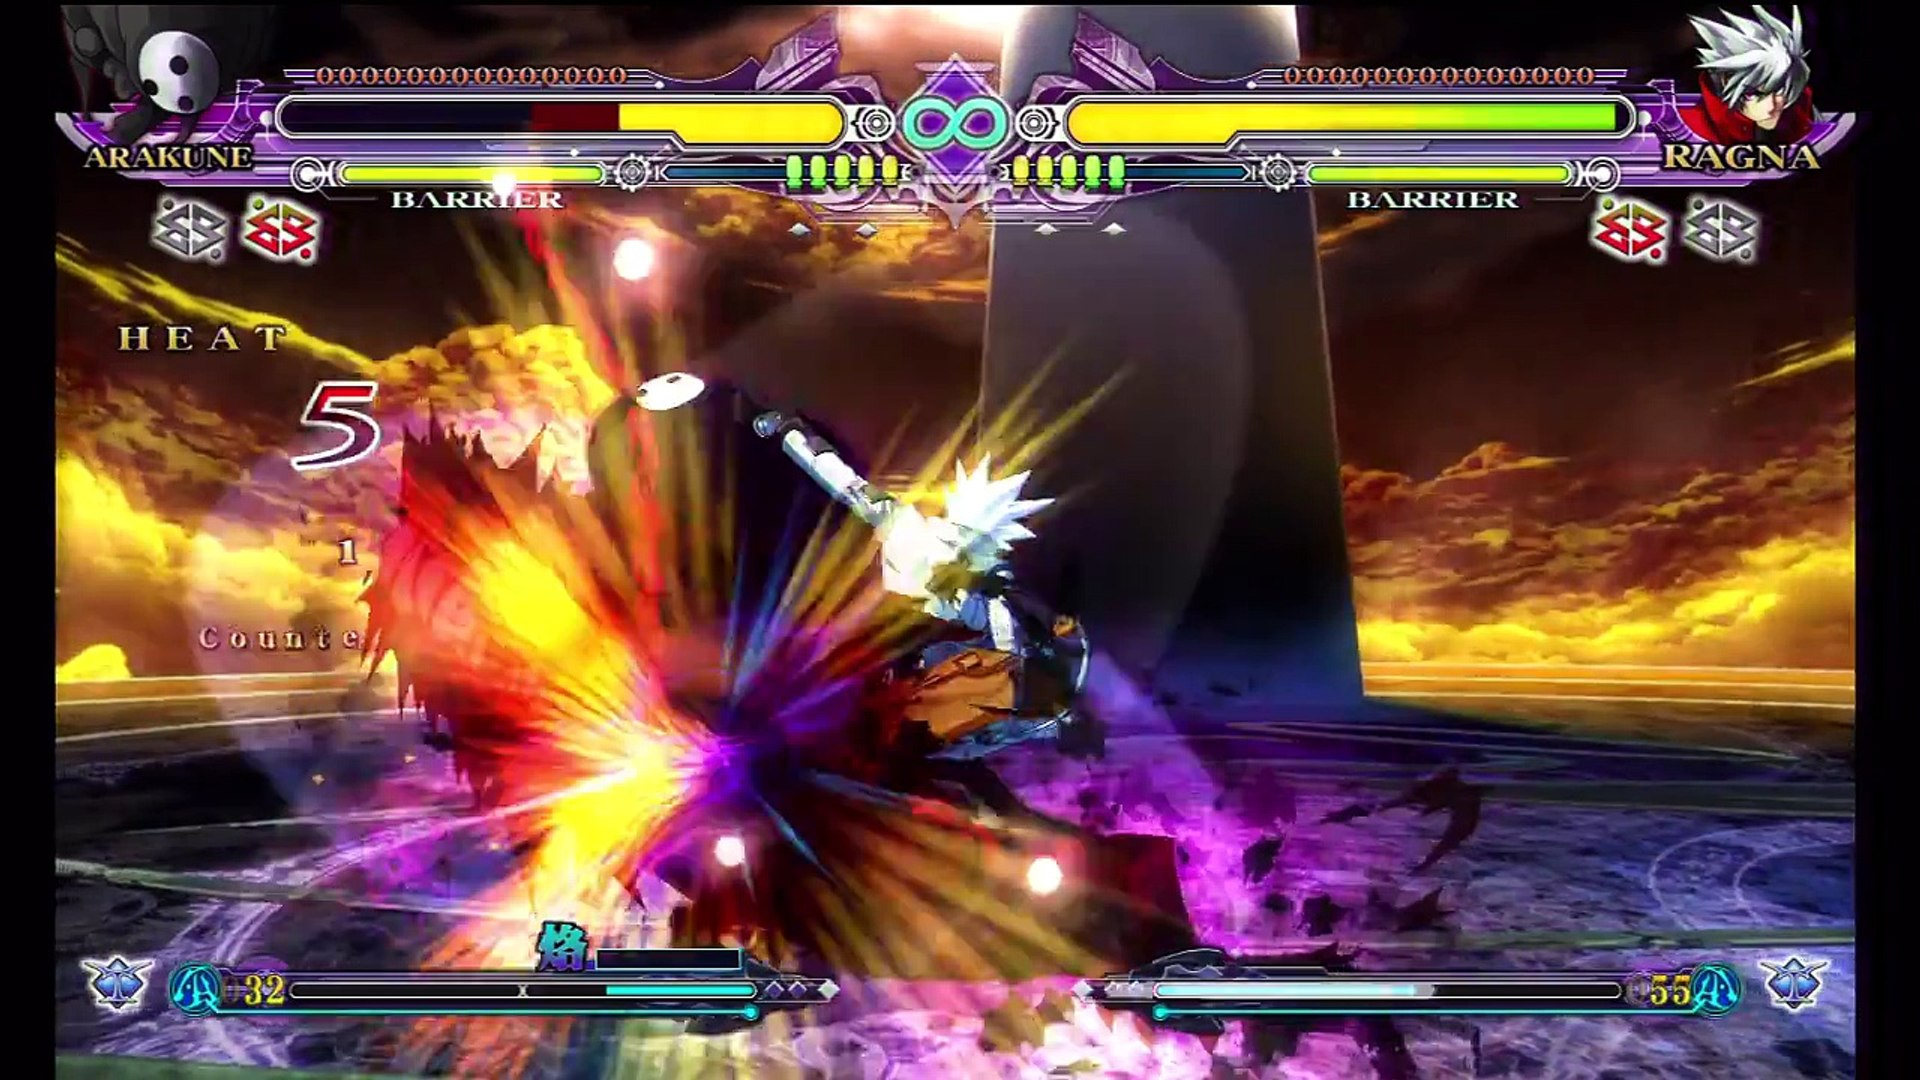 Blazblue Continuum Shift Extend - Arakune vs Gintoki (Ragna) (02 Dec 2012)